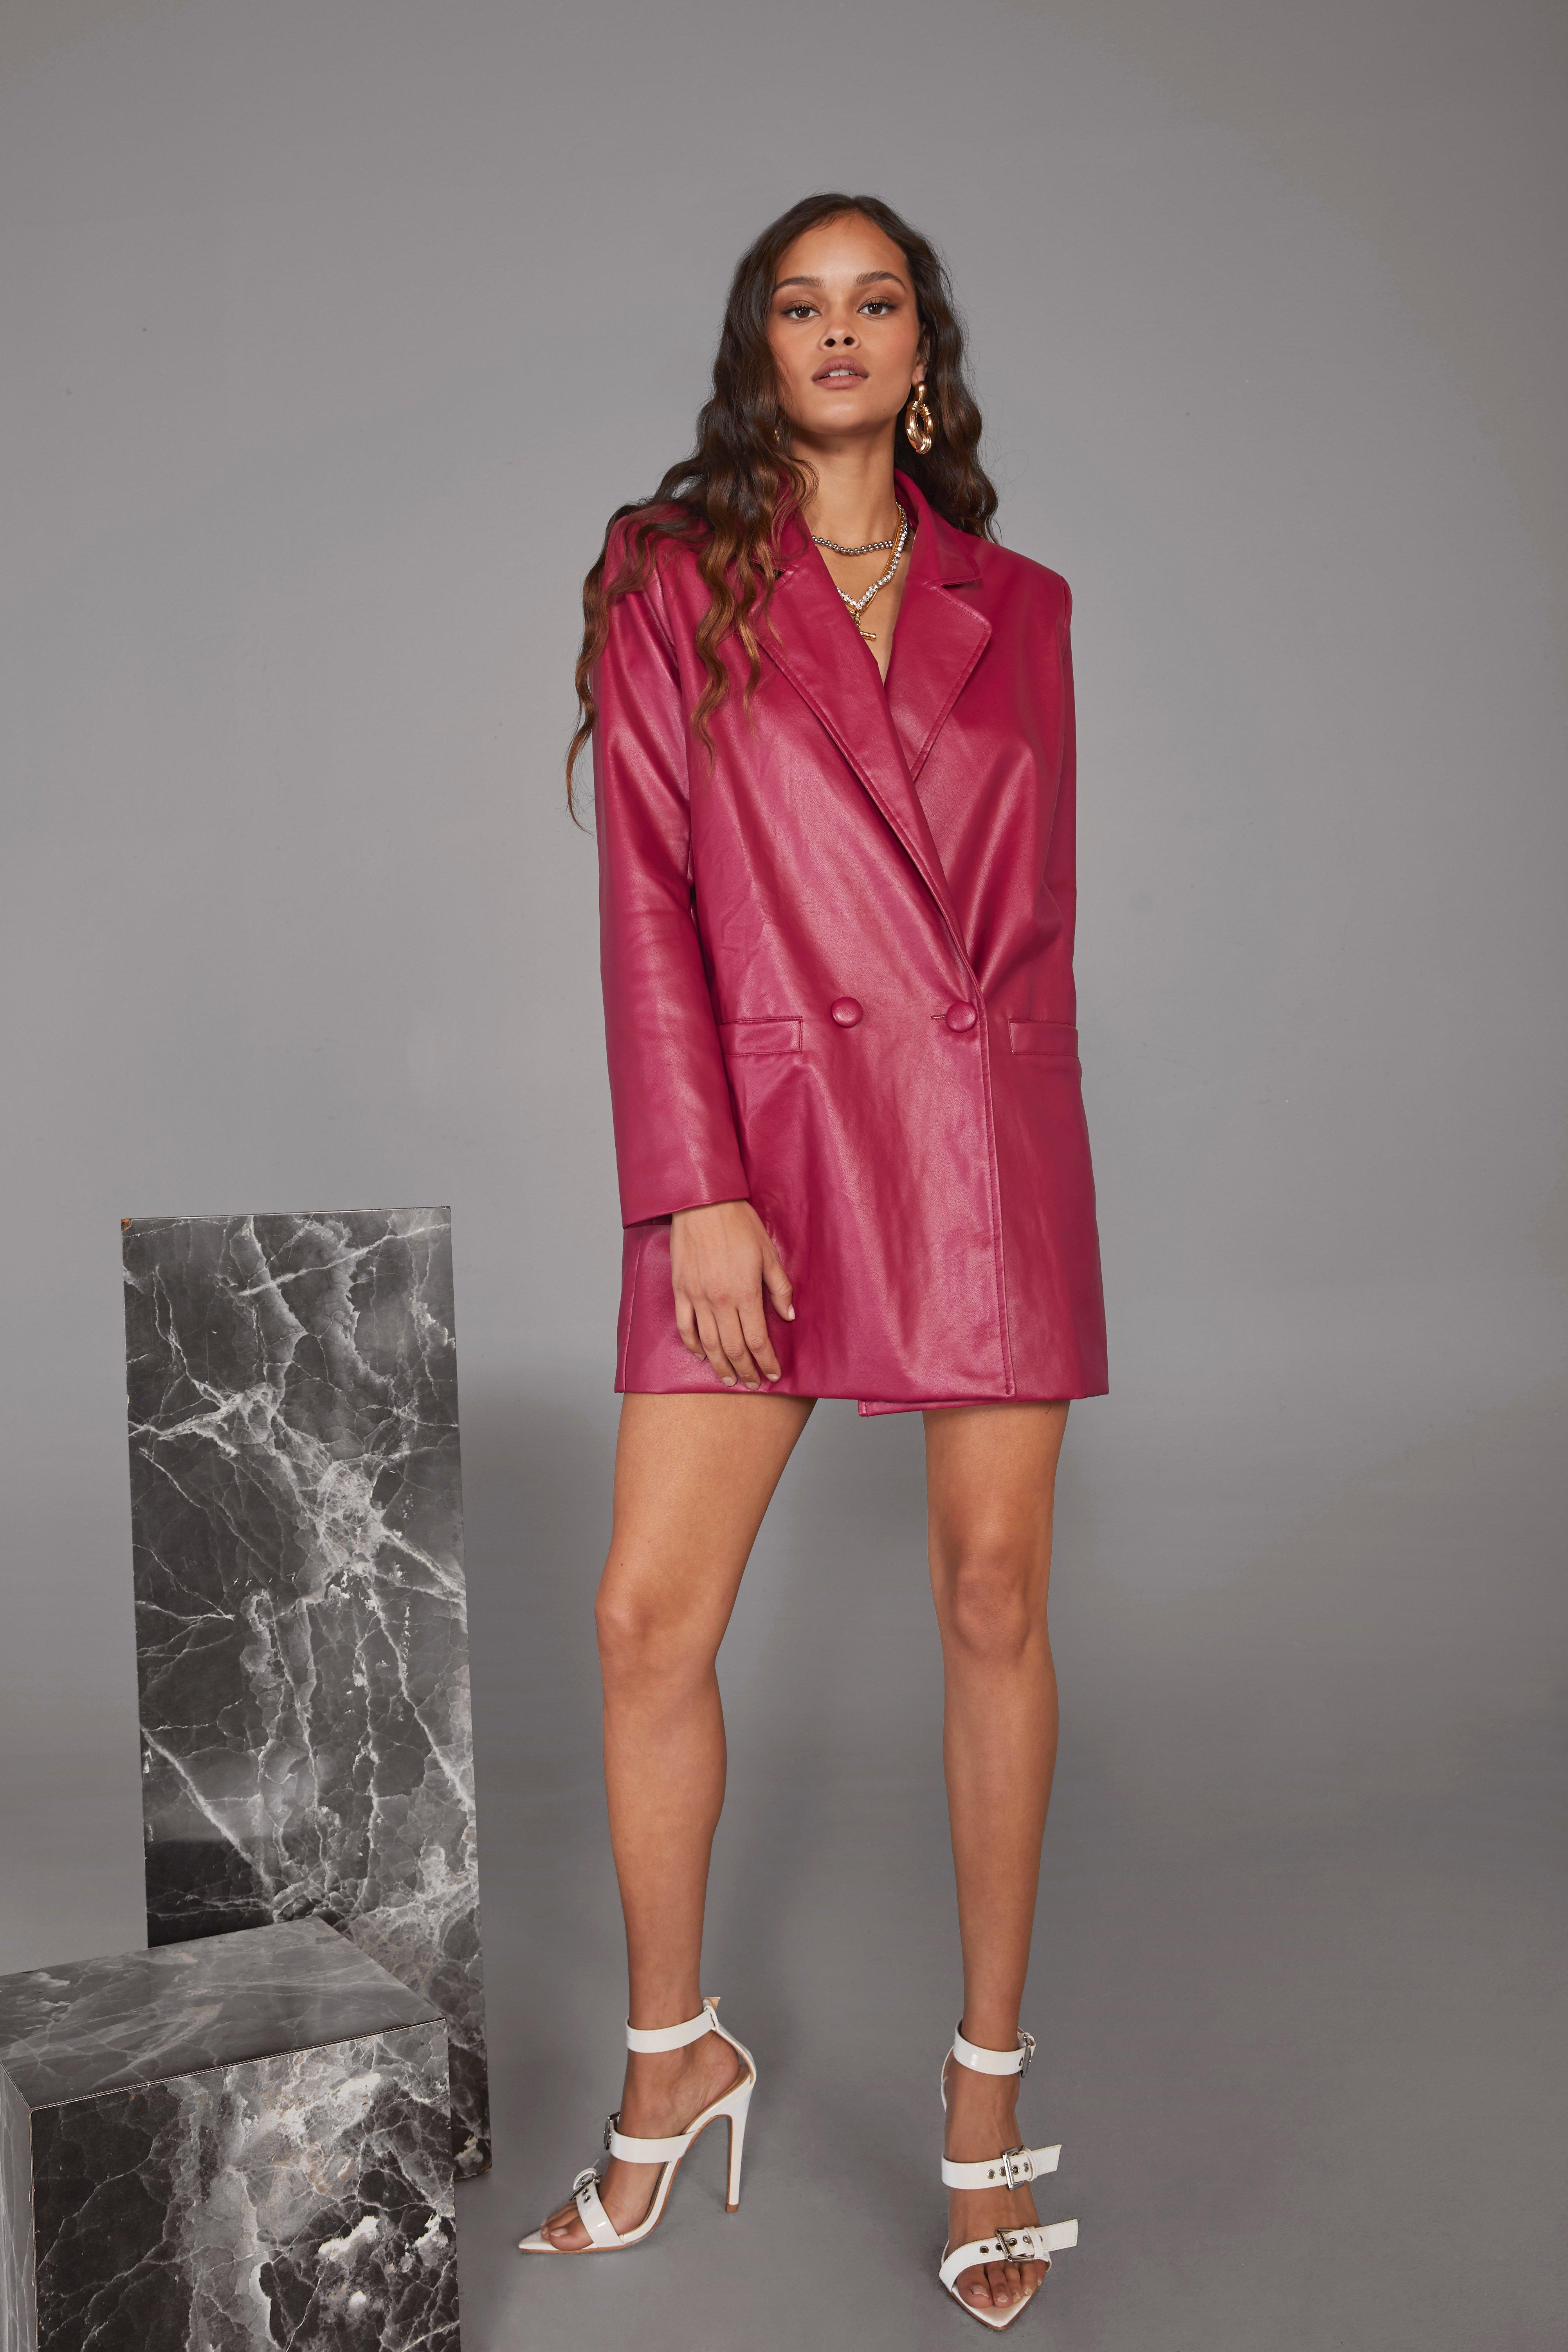 Image of Atomic Faux Leather Blazer Dress